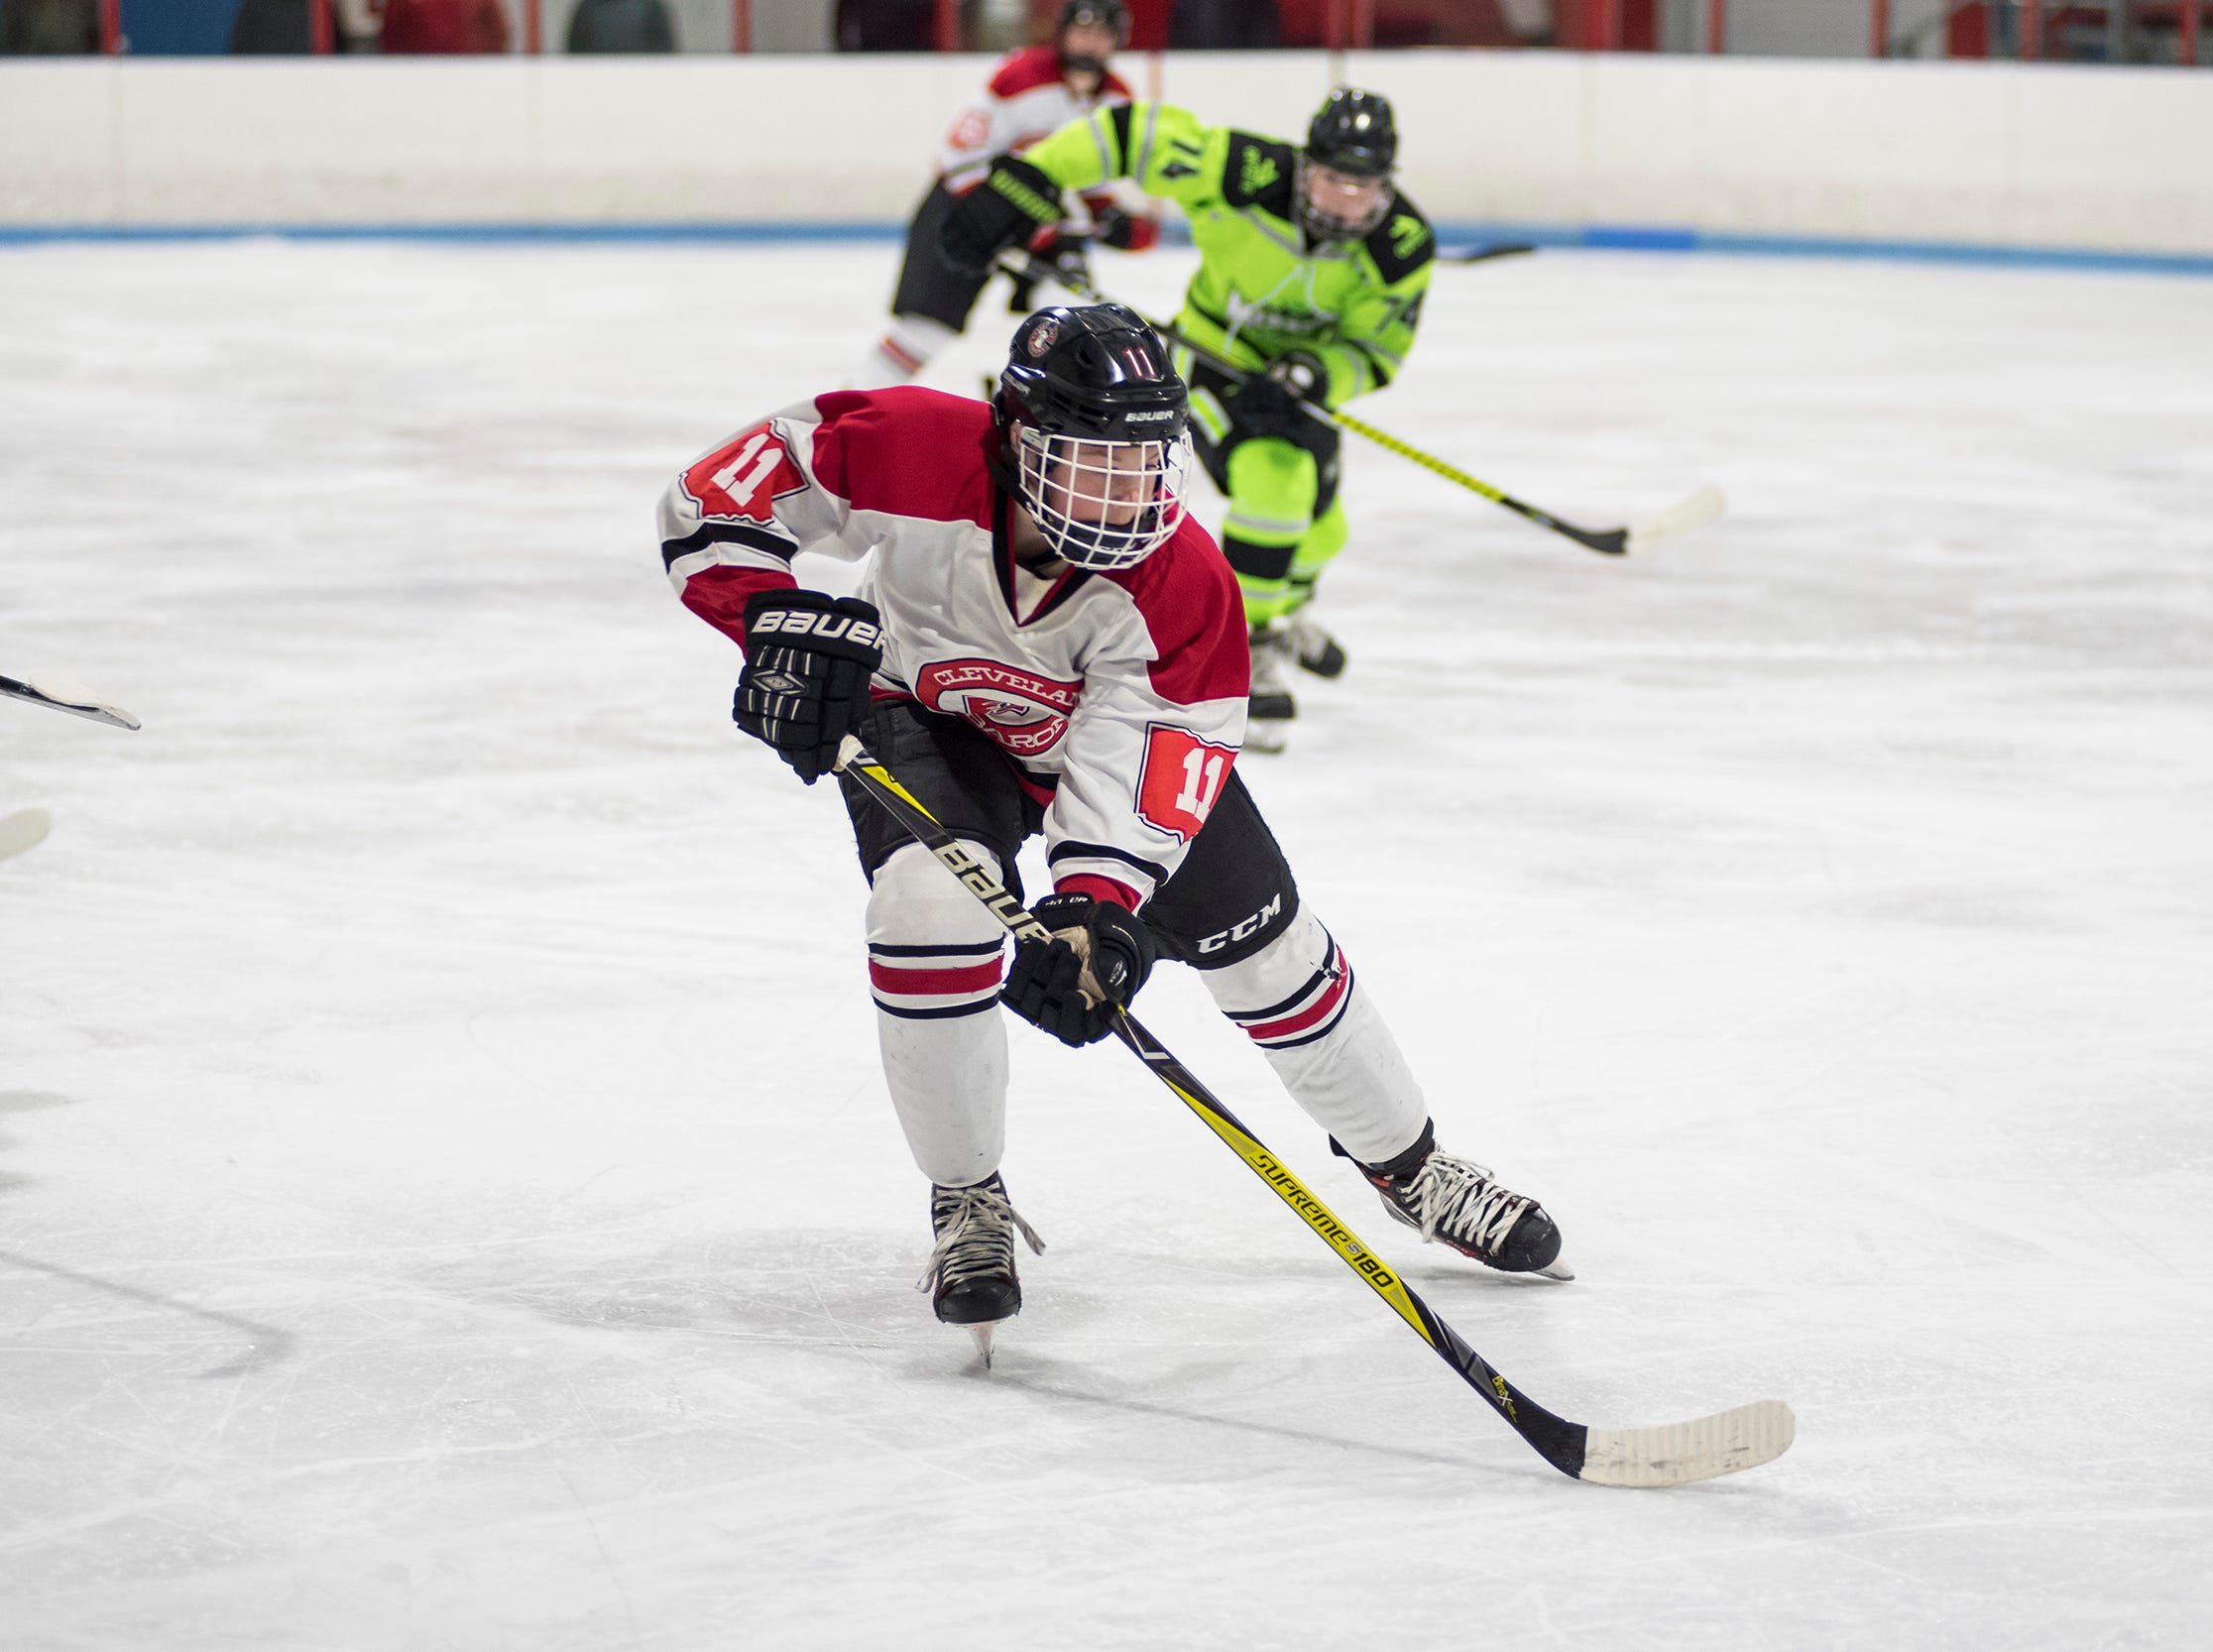 Cleveland Barons Elite forward Lance Mengel skates with the puck during their BAAA-C Silver Stick Finals match against Chicago Mission Friday, Jan. 4, 2019 at Glacier Pointe Ice Complex.